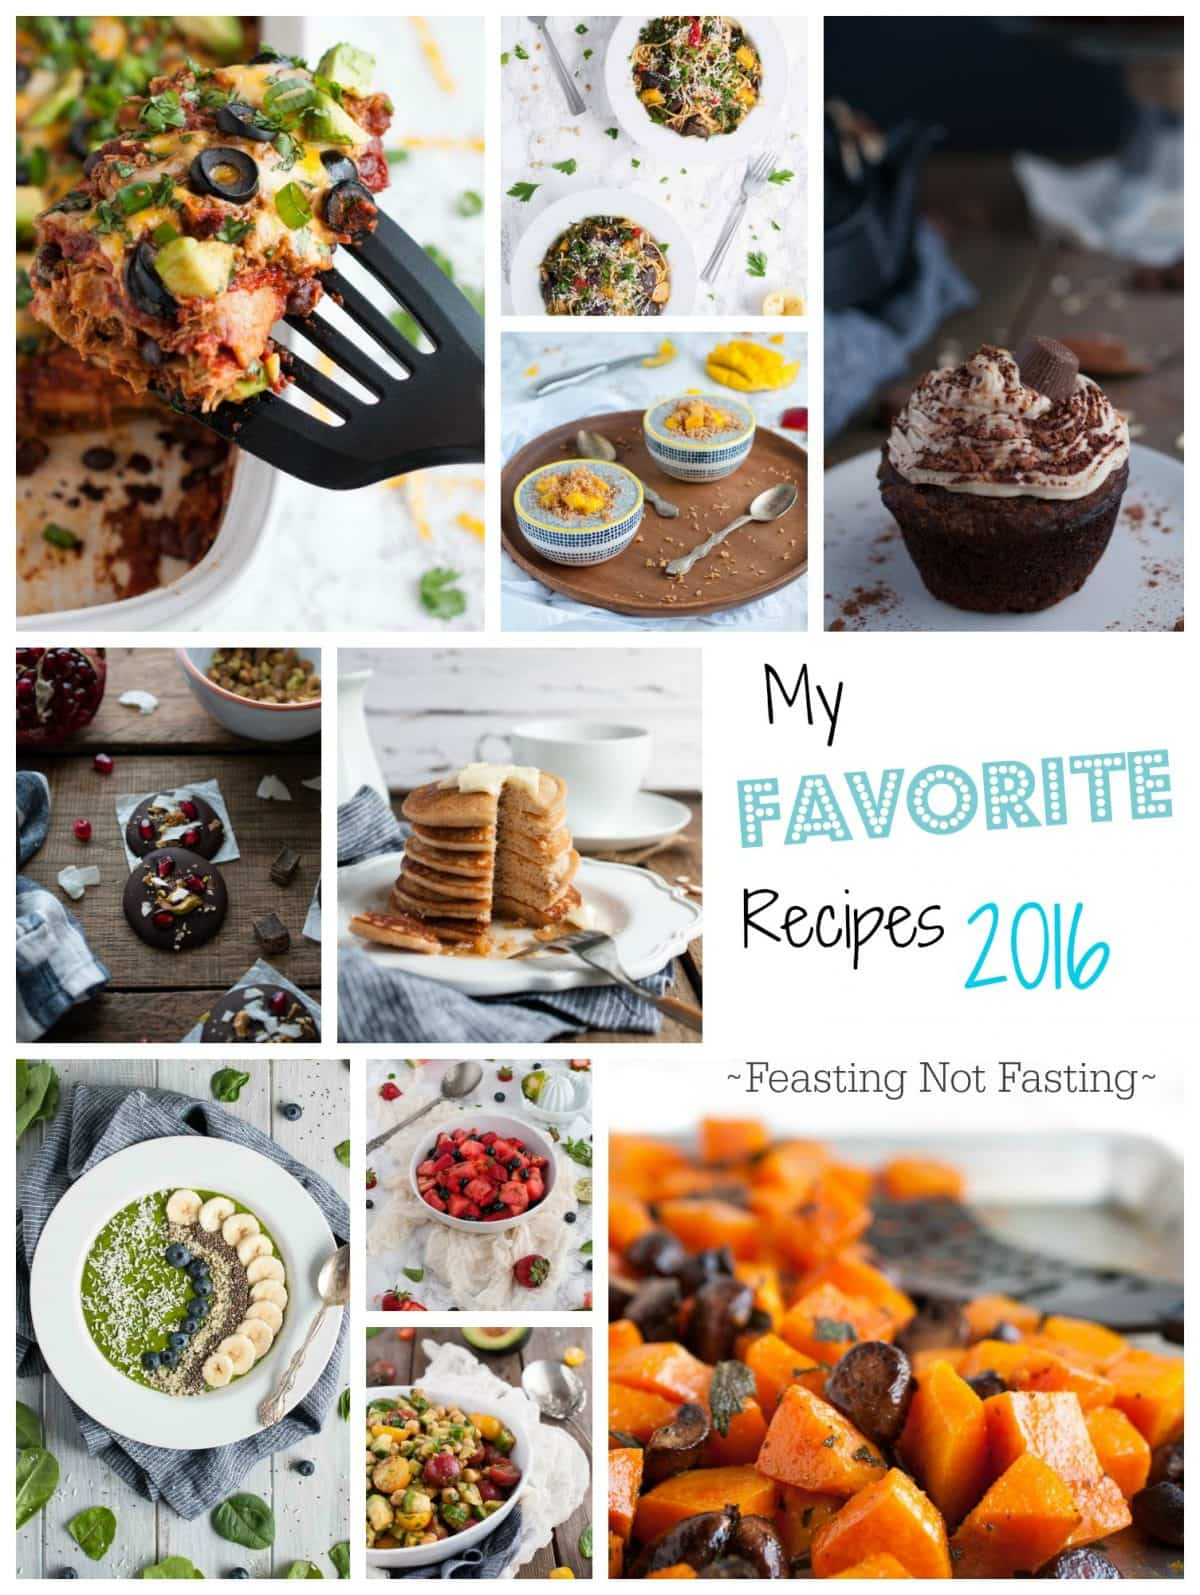 The best recipes of 2016 on Feasting Not Fasting - recipes that are healthy and good for you, but always delicious and fulfilling.